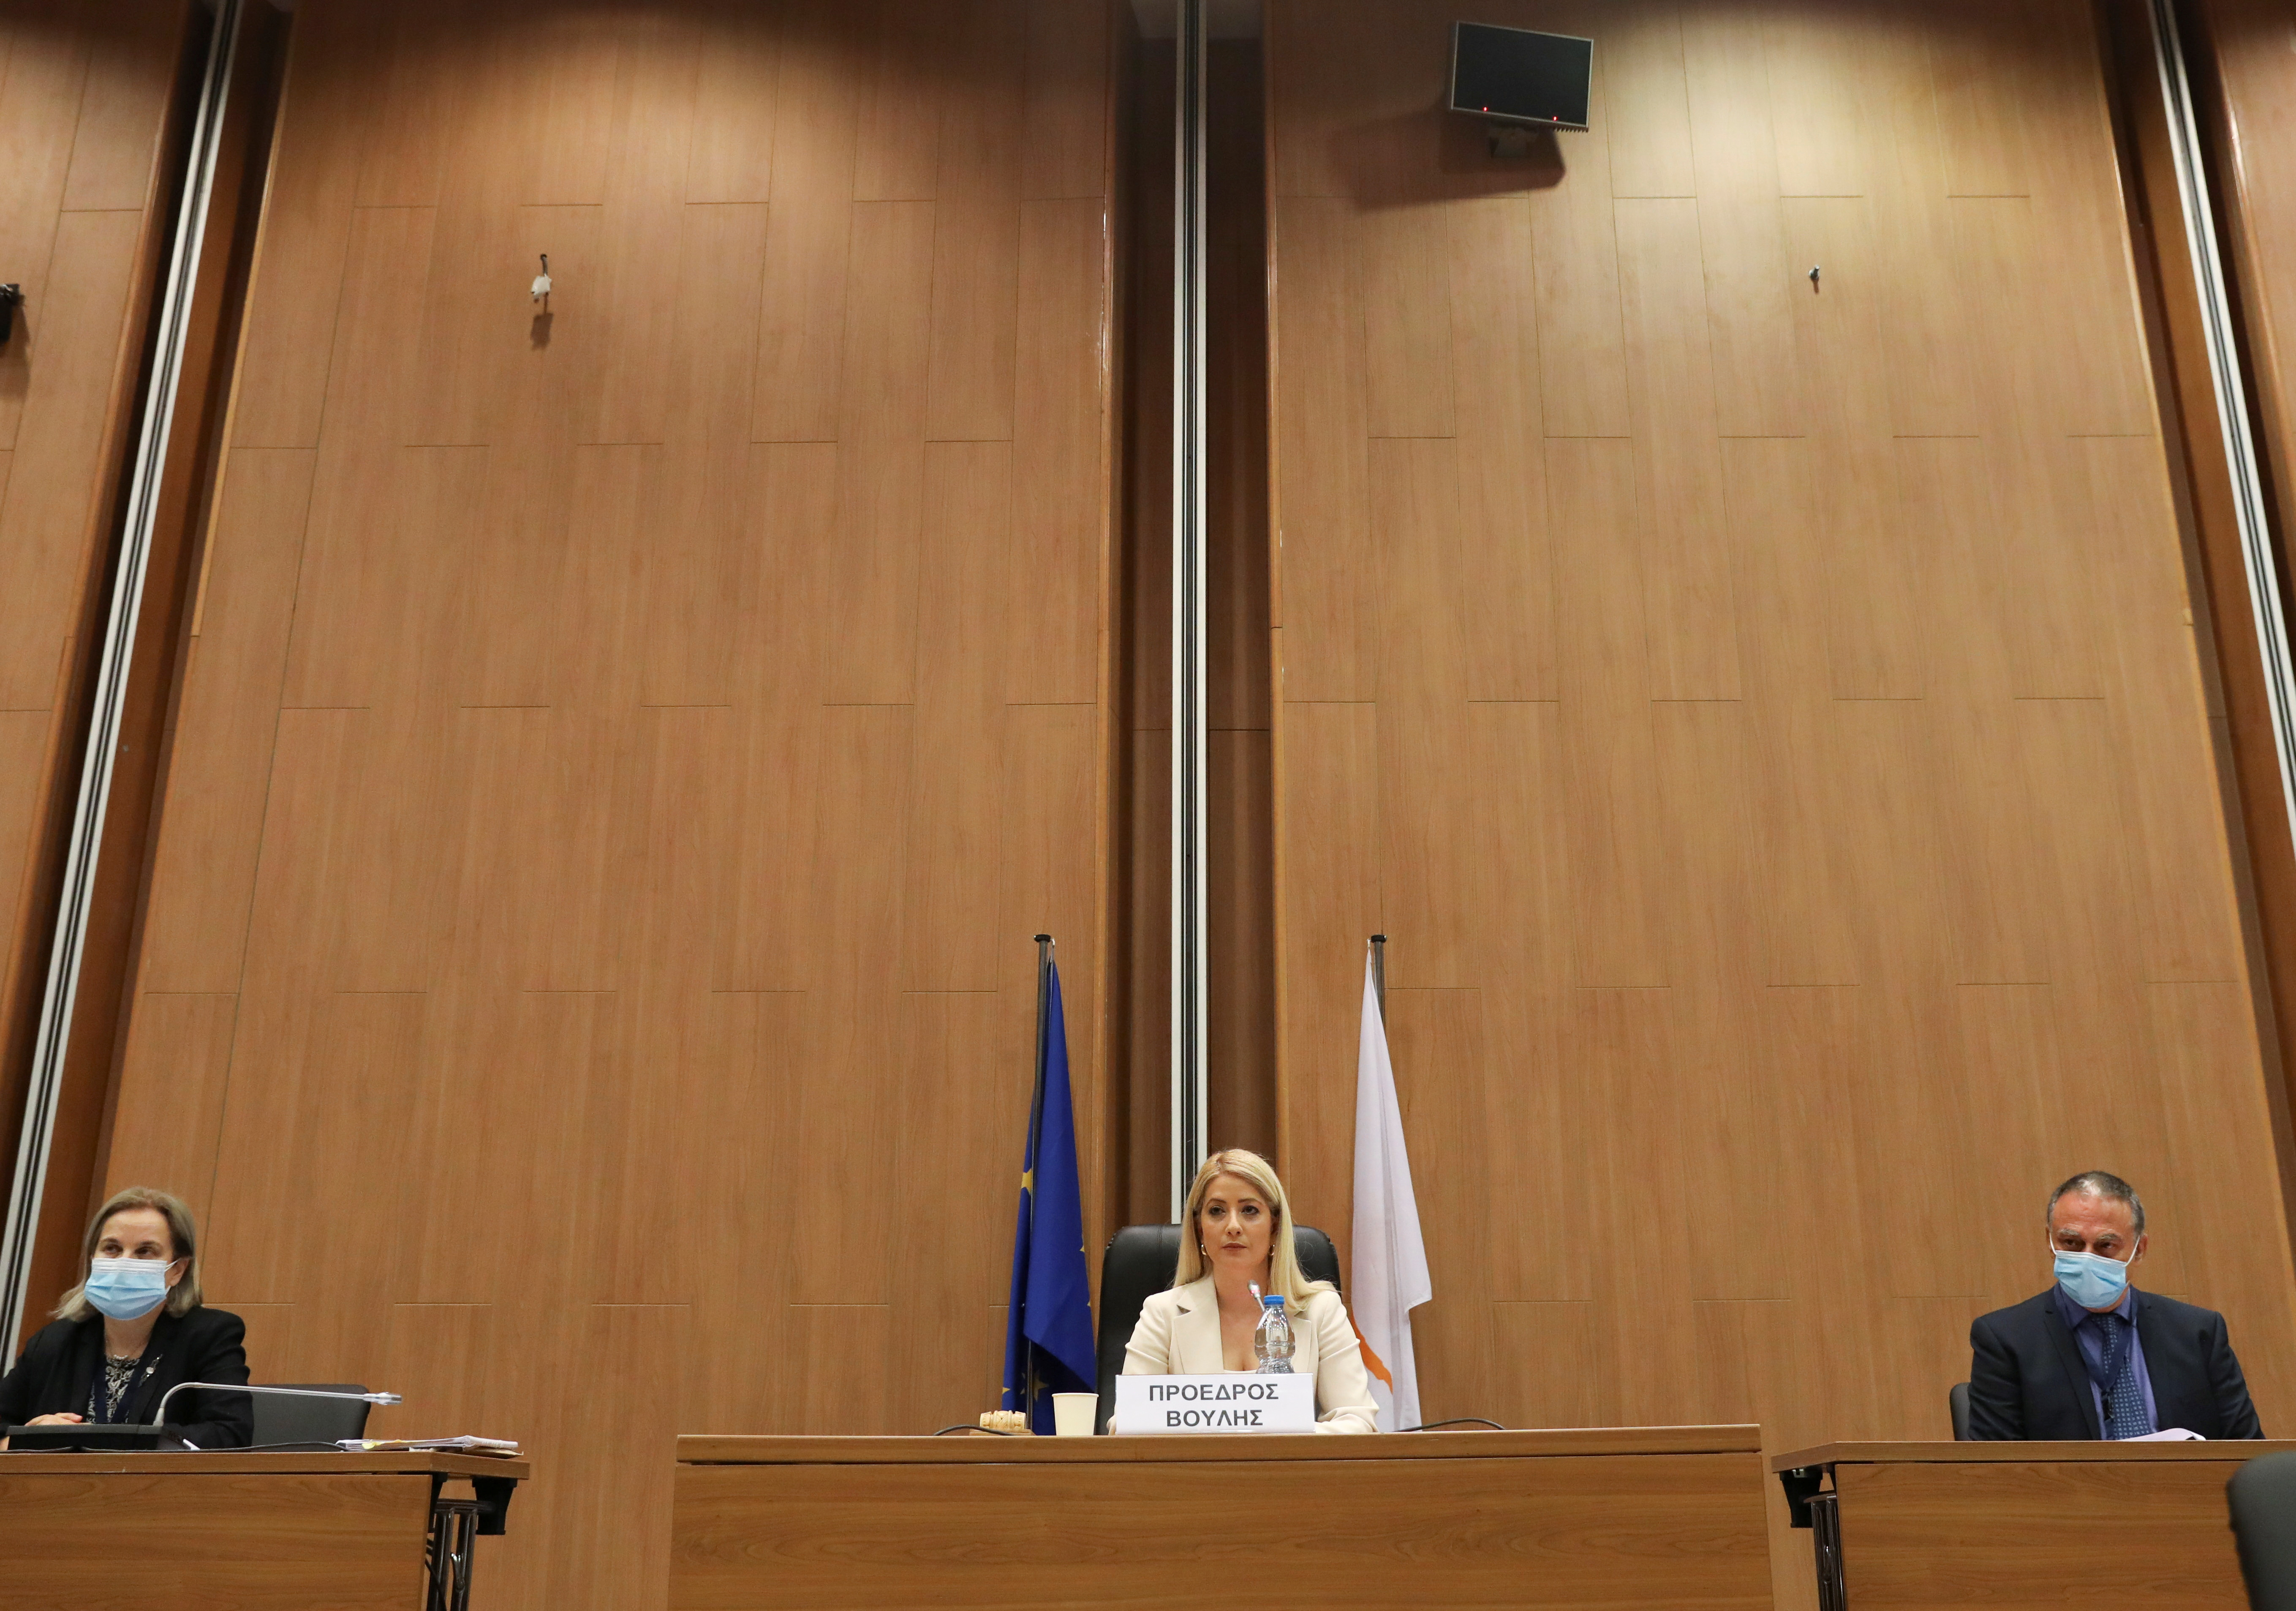 Newly elected Cypriot parliamentary speaker Annita Demetriou addresses the parliament in Nicosia, Cyprus June 10, 2021. REUTERS/Yiannis Kourtoglou